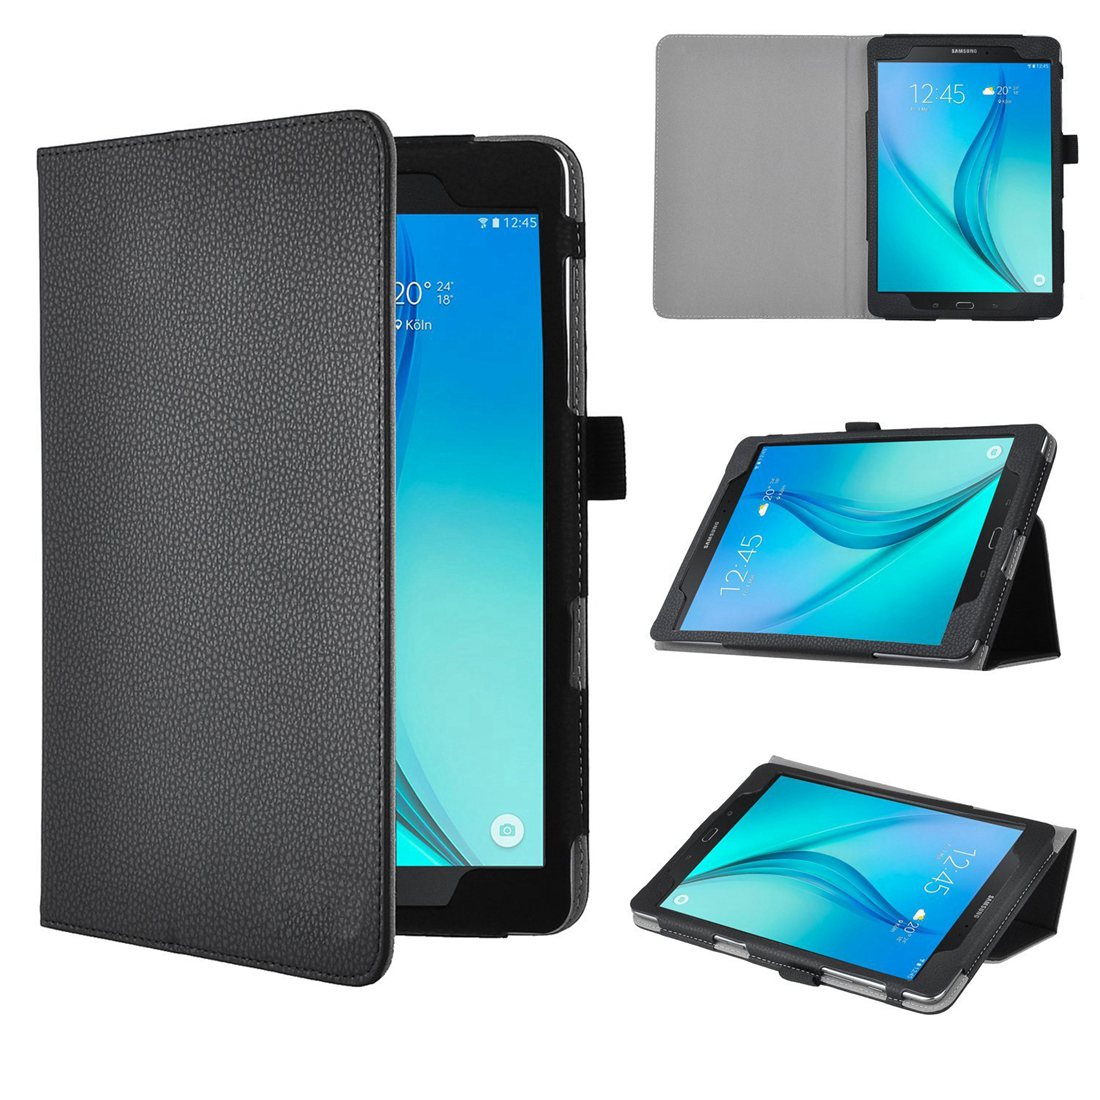 For Samsung Galaxy Tab S2 Nook 9.7-Inch Case - Ultra-Slim and Ultra-light PU Leather Folio Slim-Book Case Stand Cover slim fit stand feature folio flip pu hybrid print case for lenovo tab 3 730f 730m 730x 7 inch